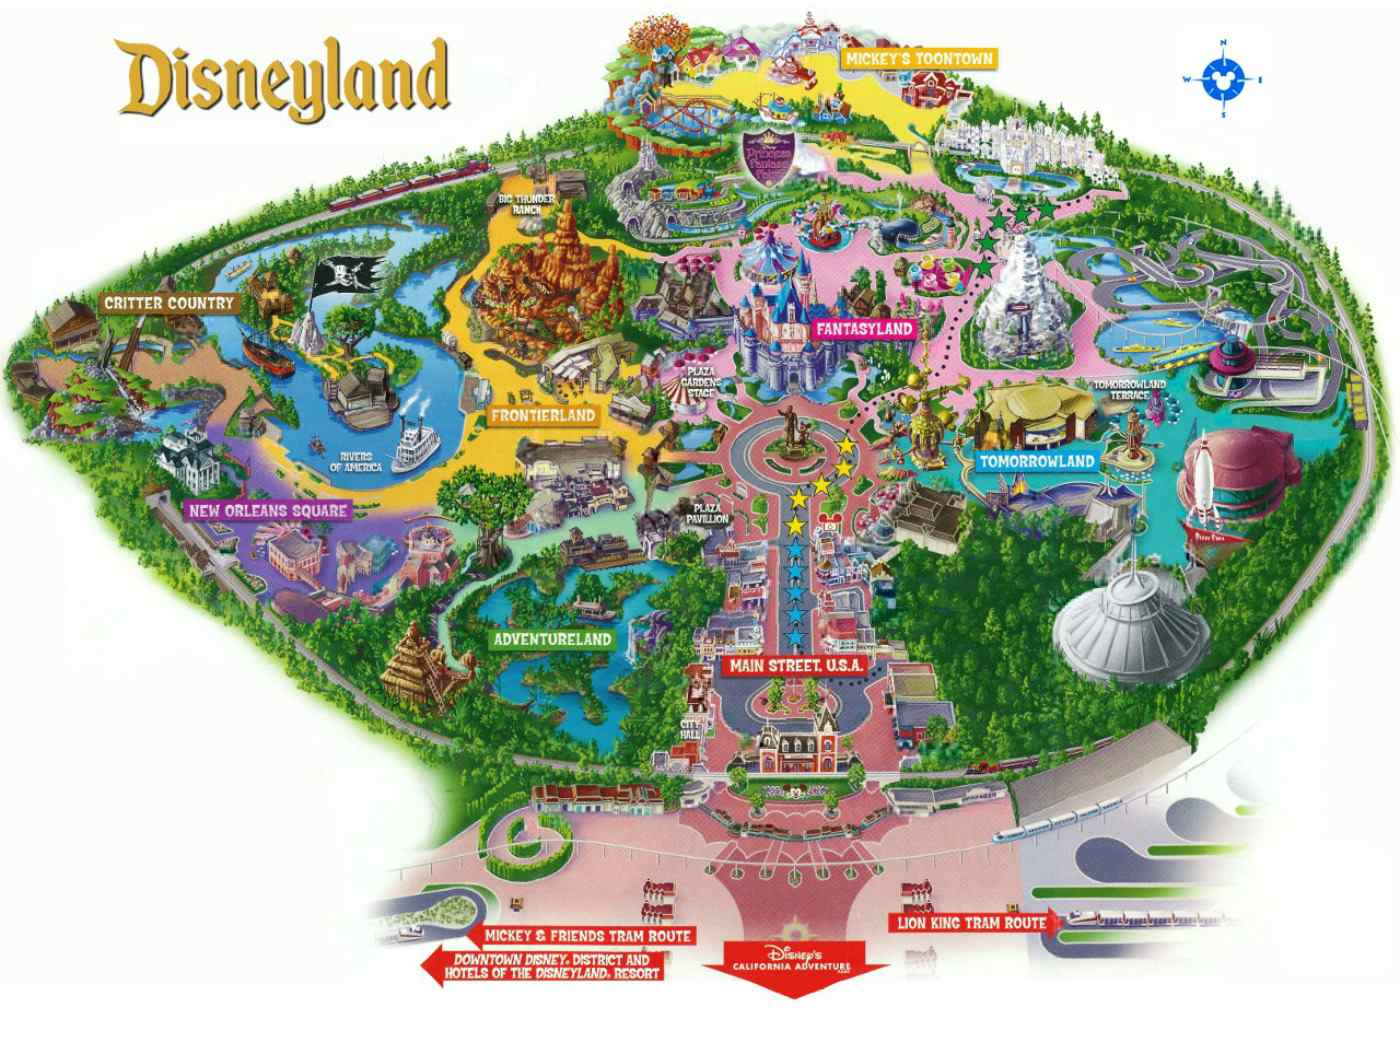 Maps of Disneyland Resort in Anaheim, California Disneyland Hotels Map on